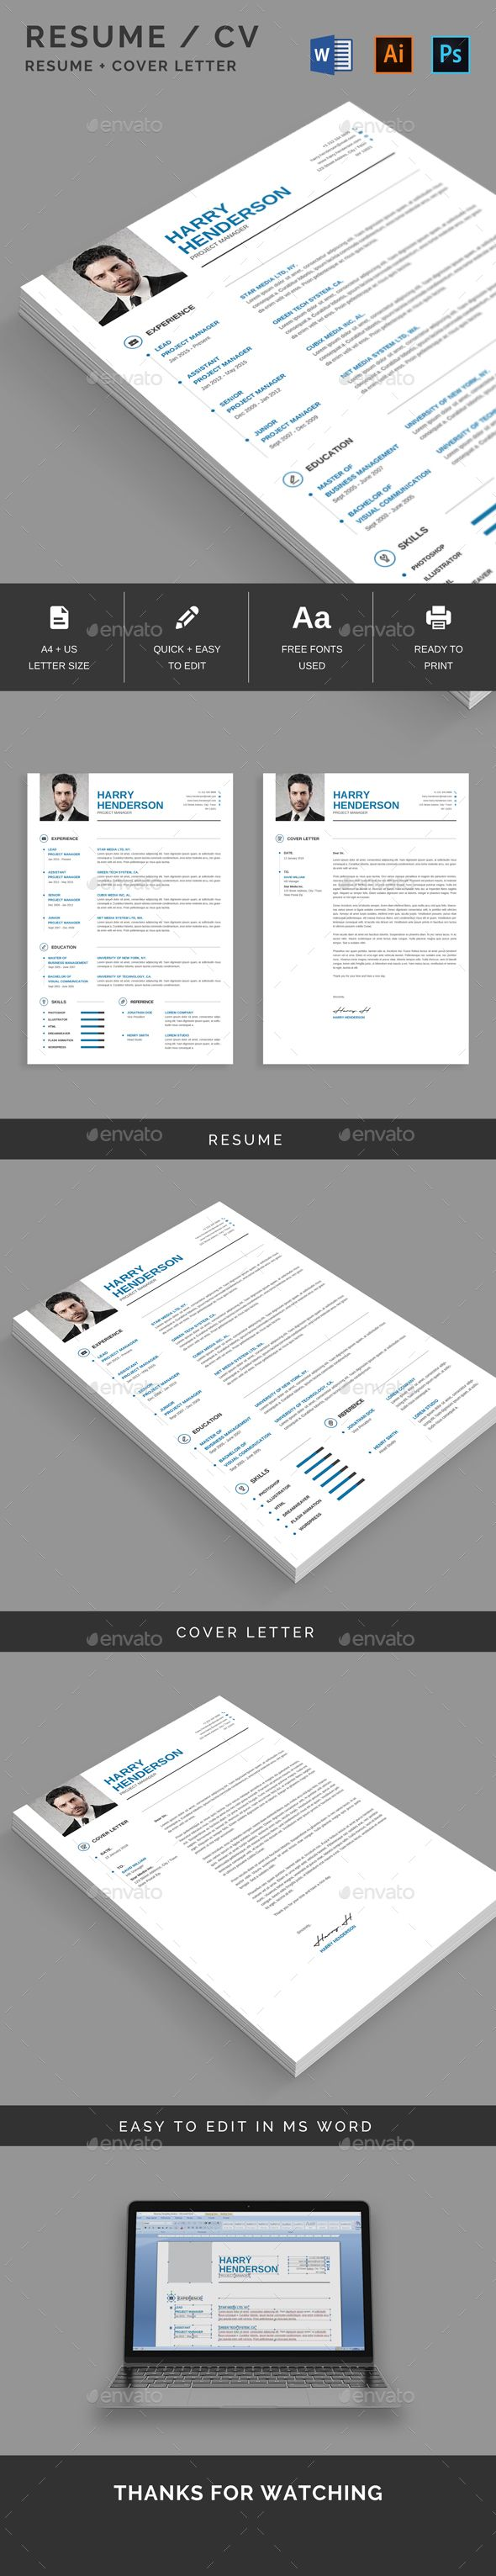 The 26 best Resume Template images on Pinterest